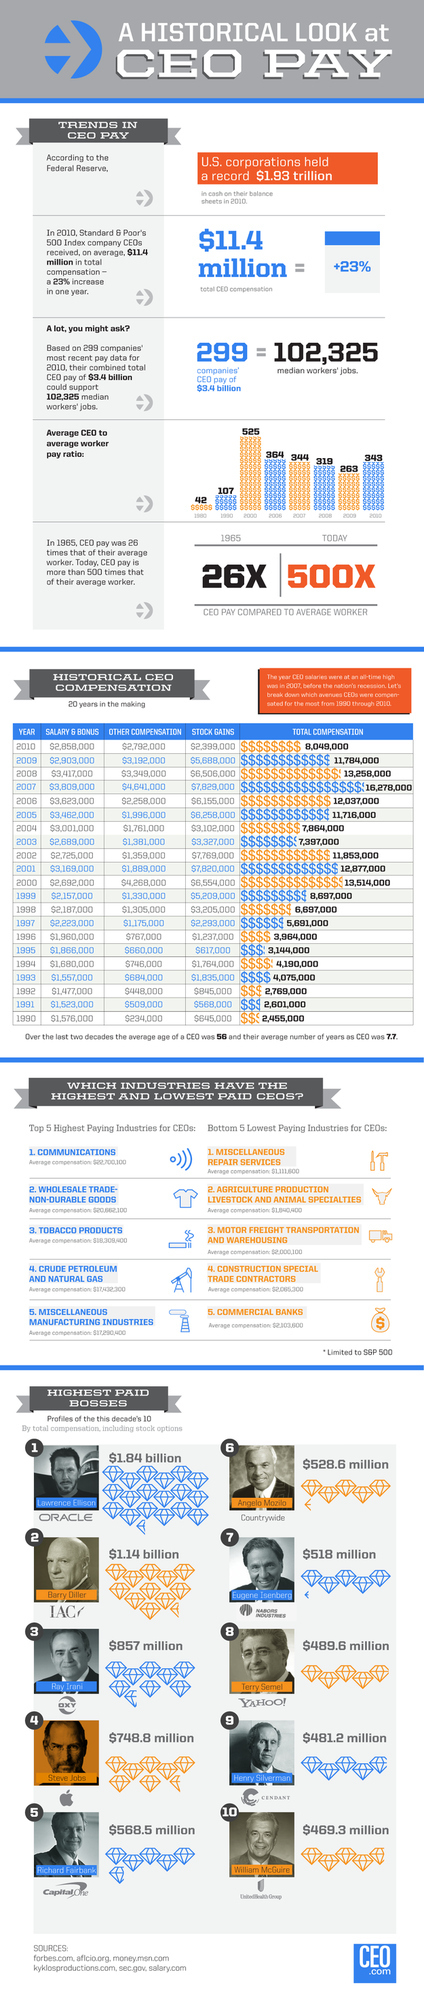 Infographic: A Historical Look at CEO Pay